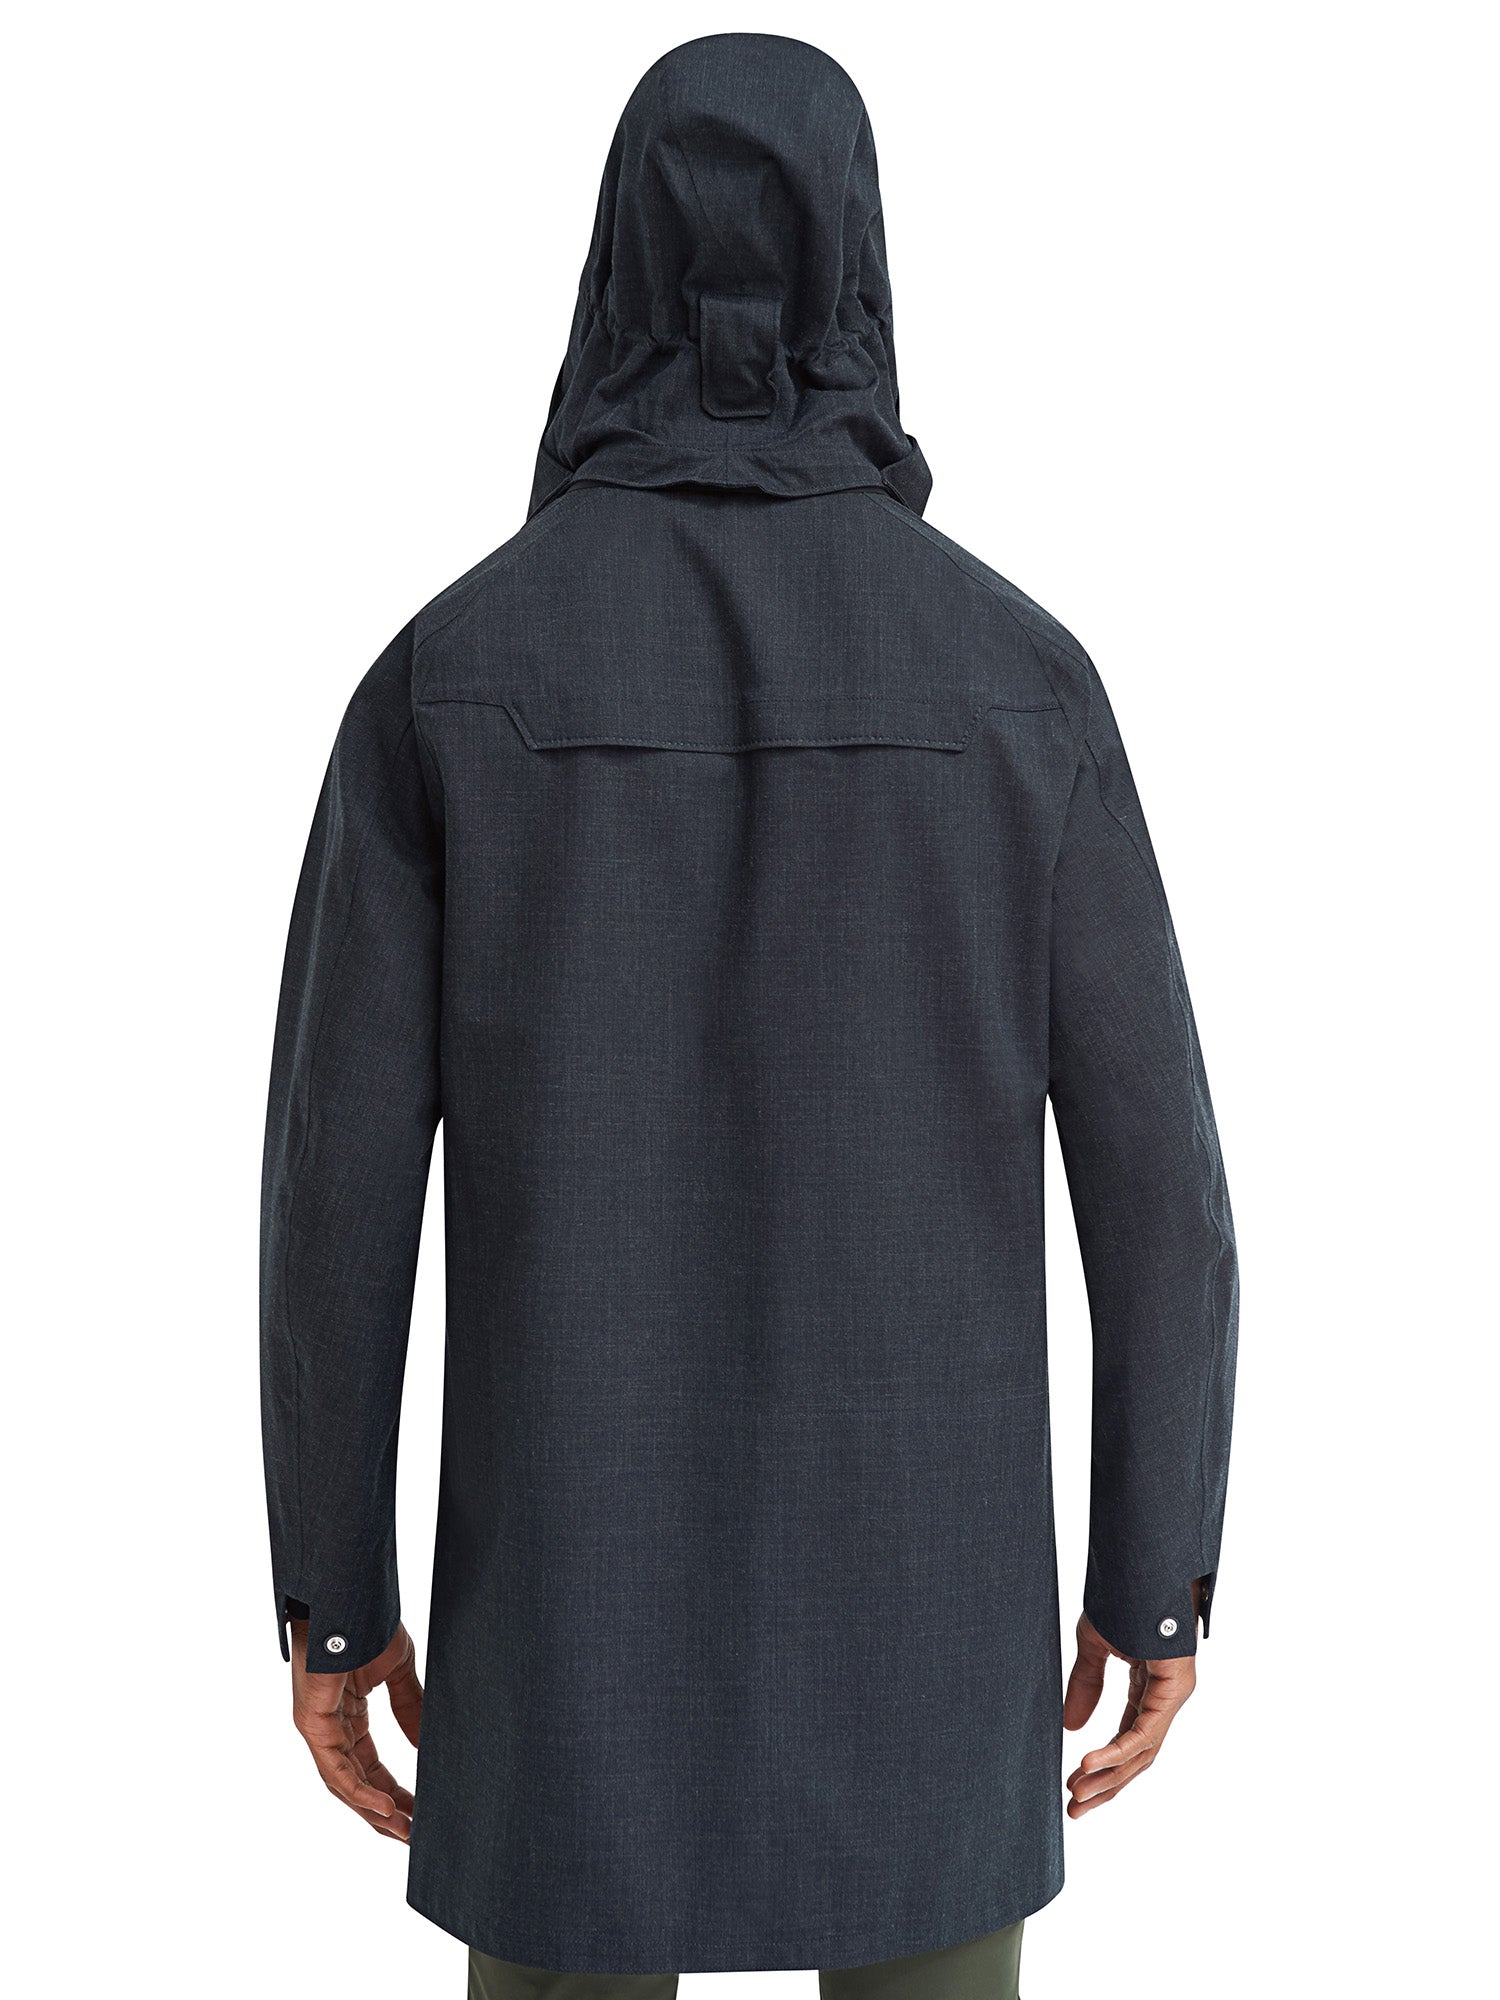 Aft Jacket - Dark Grey Heather